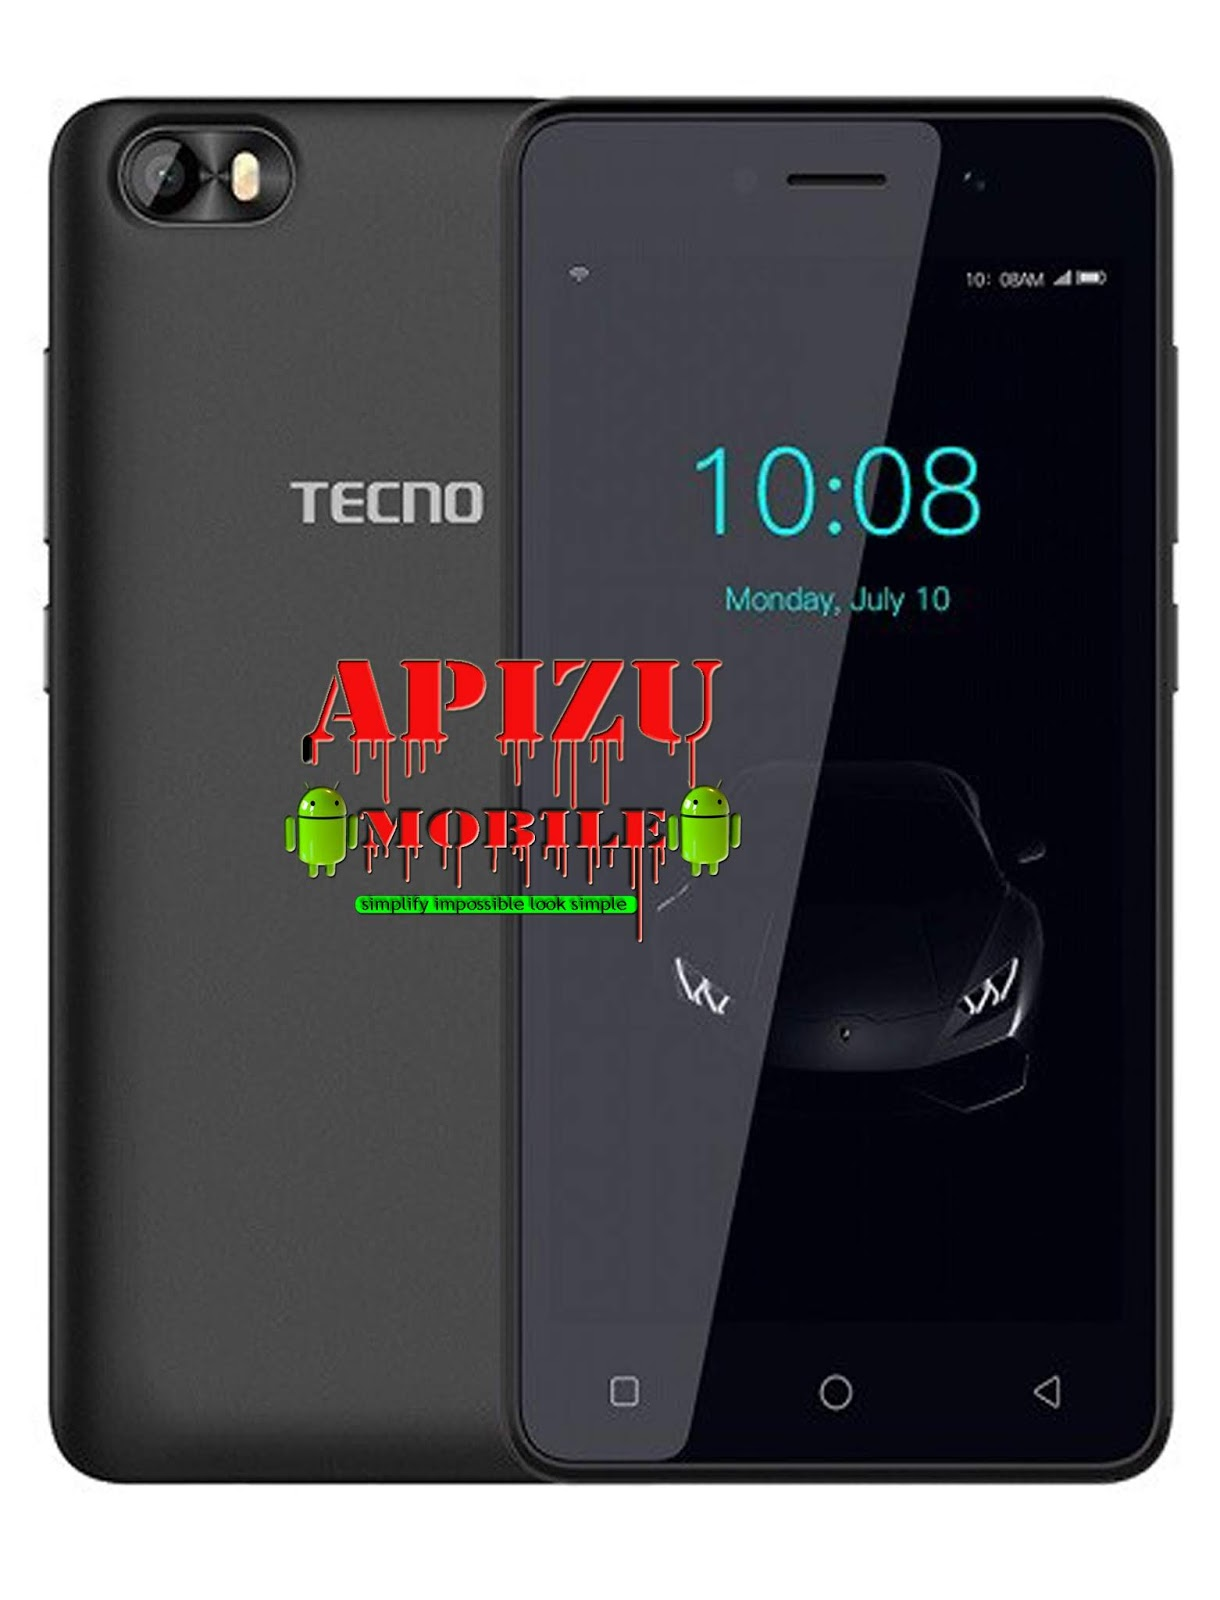 DOWNLOAD TECNO F1 FIRMWARE (OFFICIAL FIRMWARE) WORKING